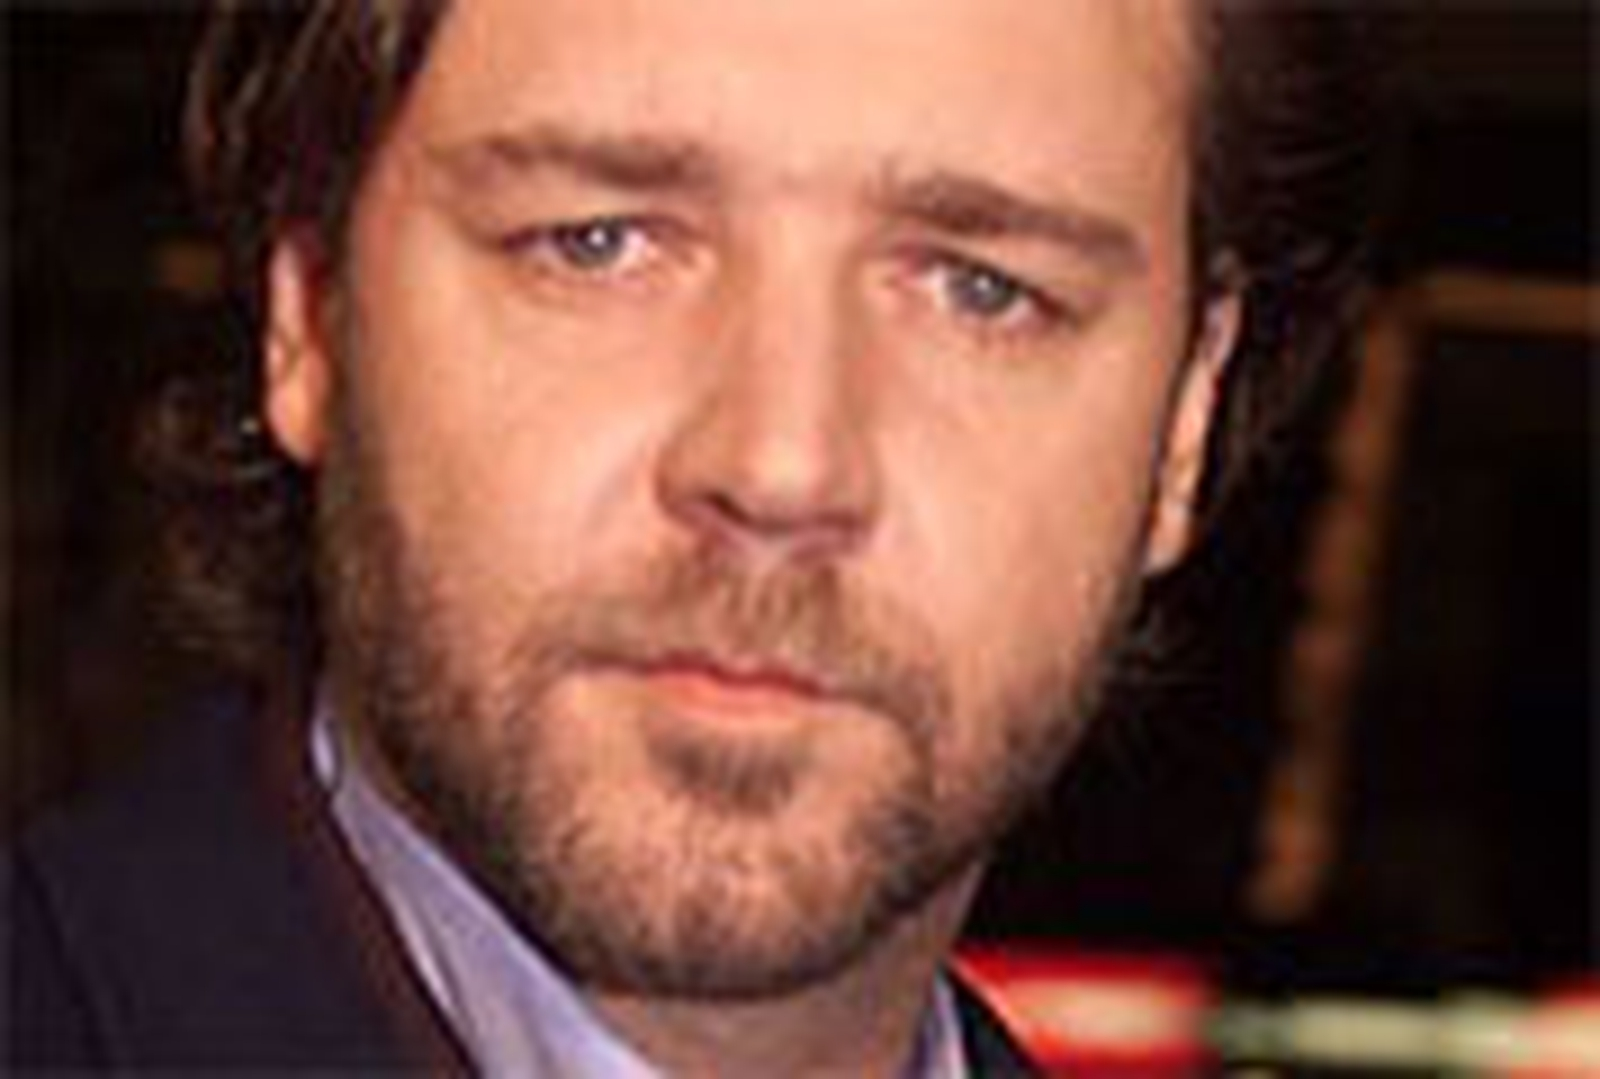 Russell crowe arrested for assault new pictures